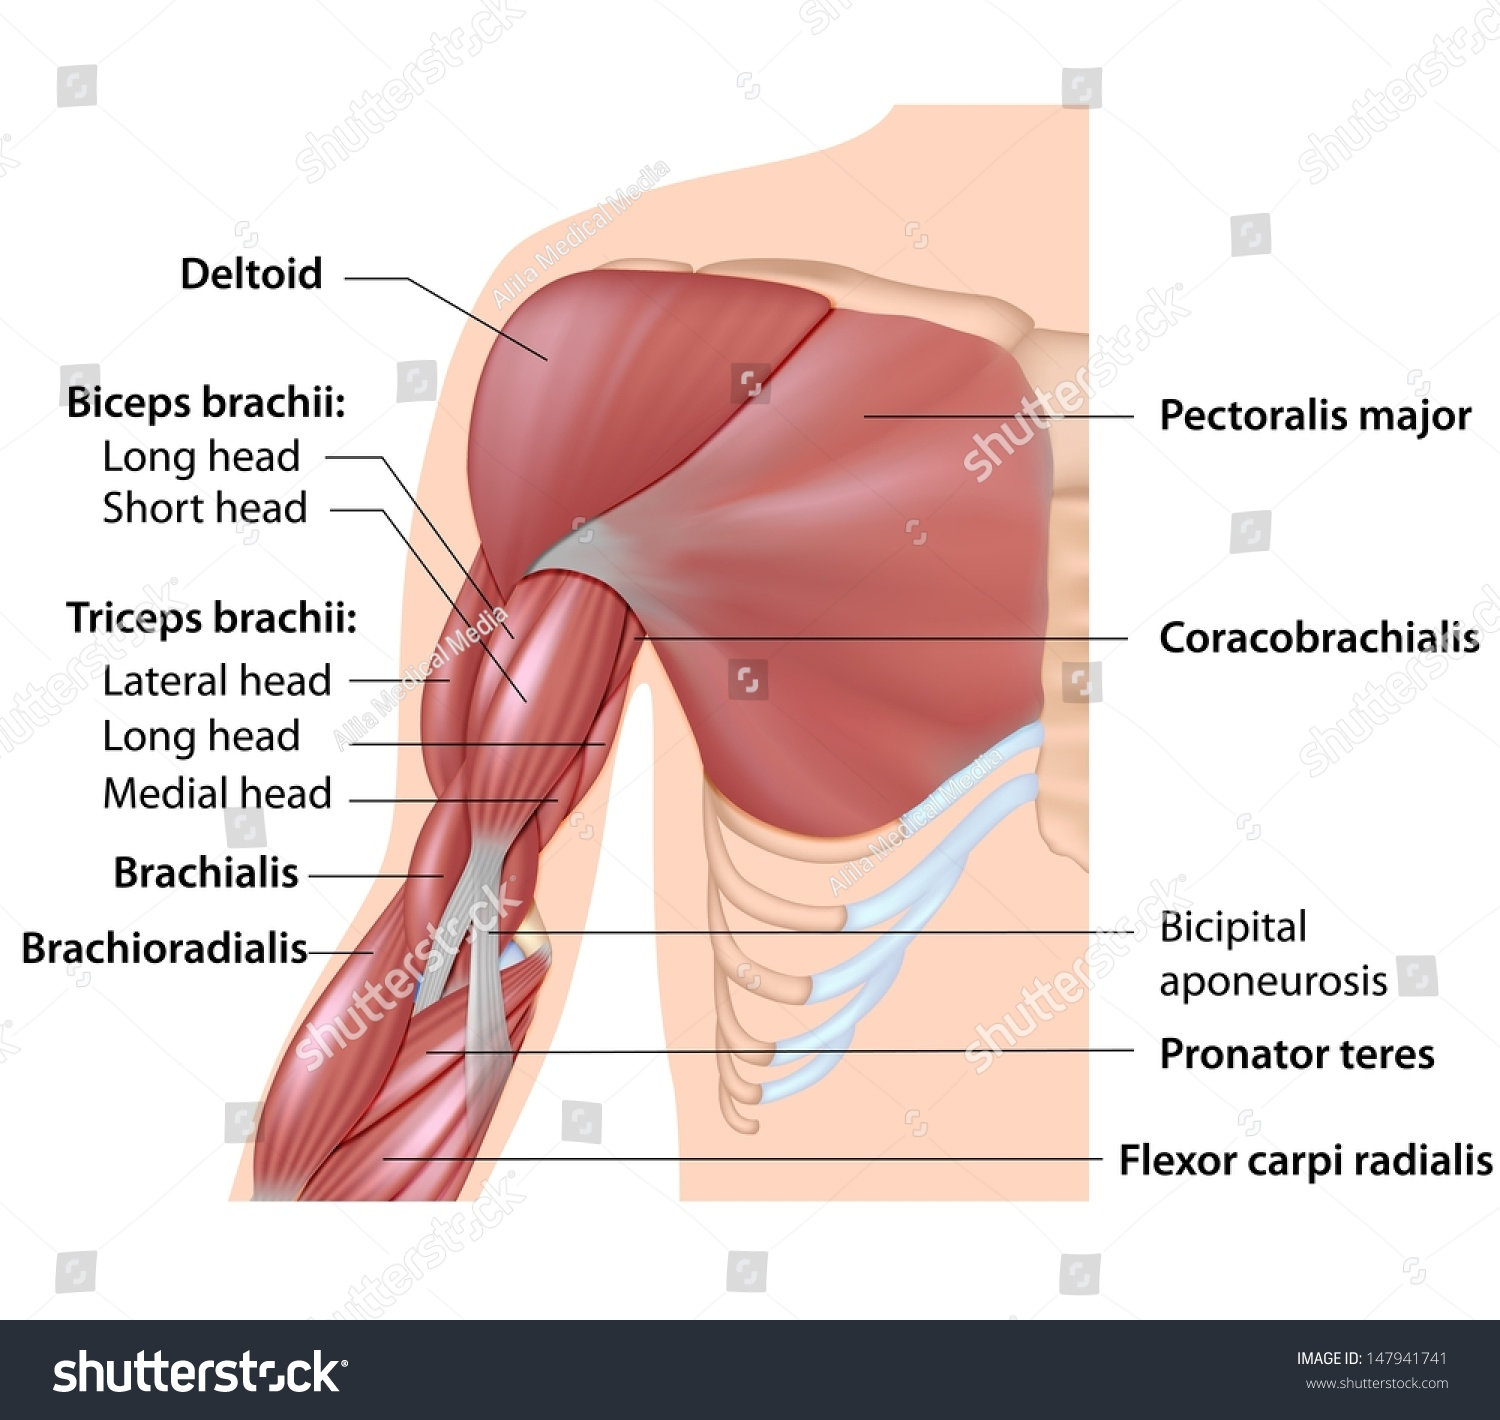 Muscles Arm Anatomy Labeled Diagram Stock Illustration 147941741 ...